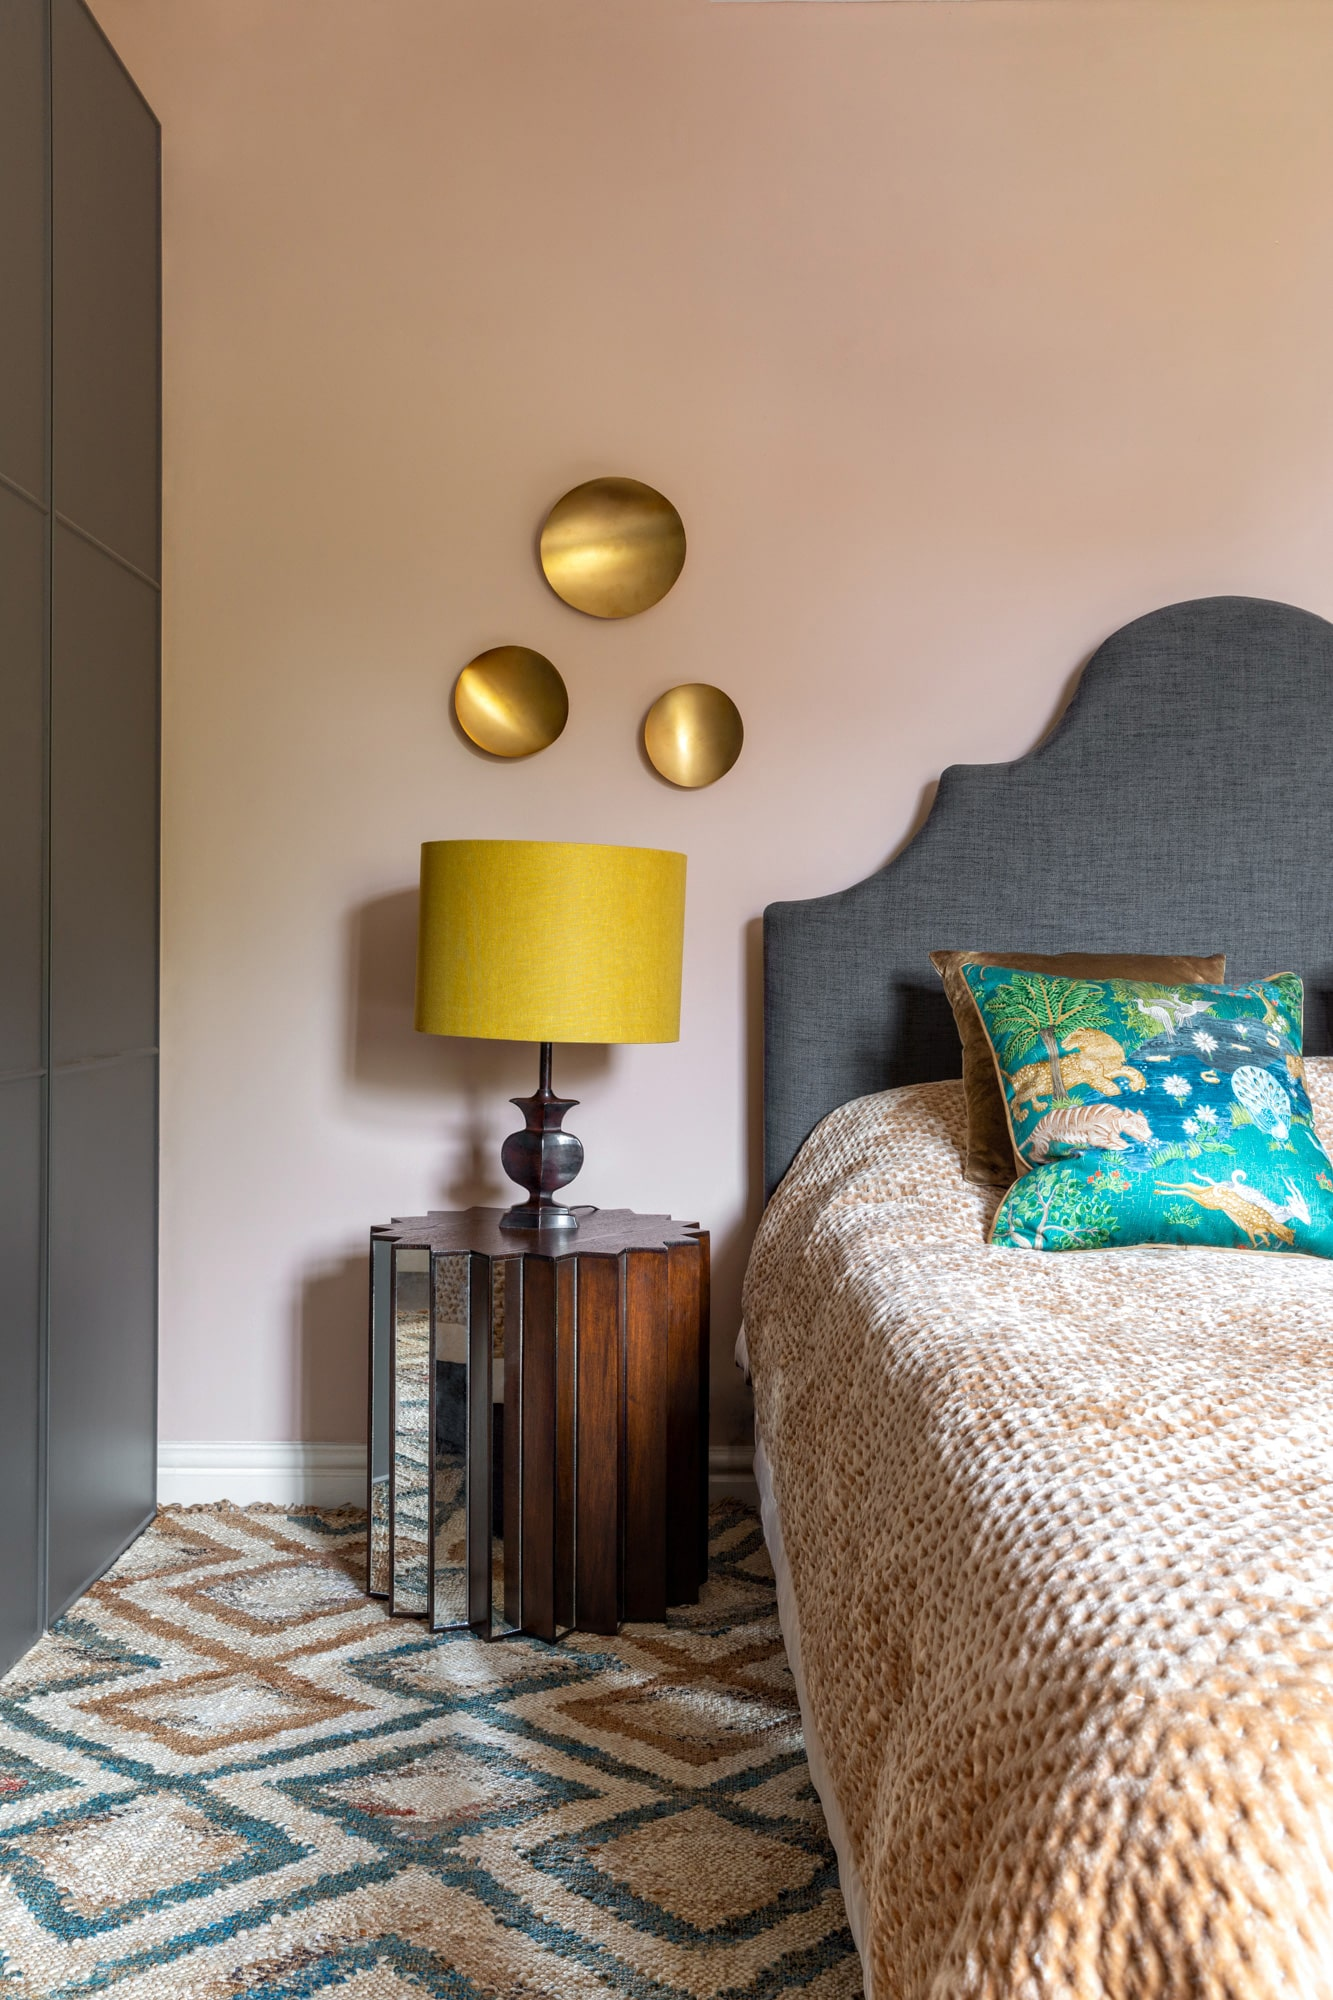 Interior photo: a bedroom with salmon pink walls, grey bed, grey wardrobe, glass bedside table with a yellow lamp on top